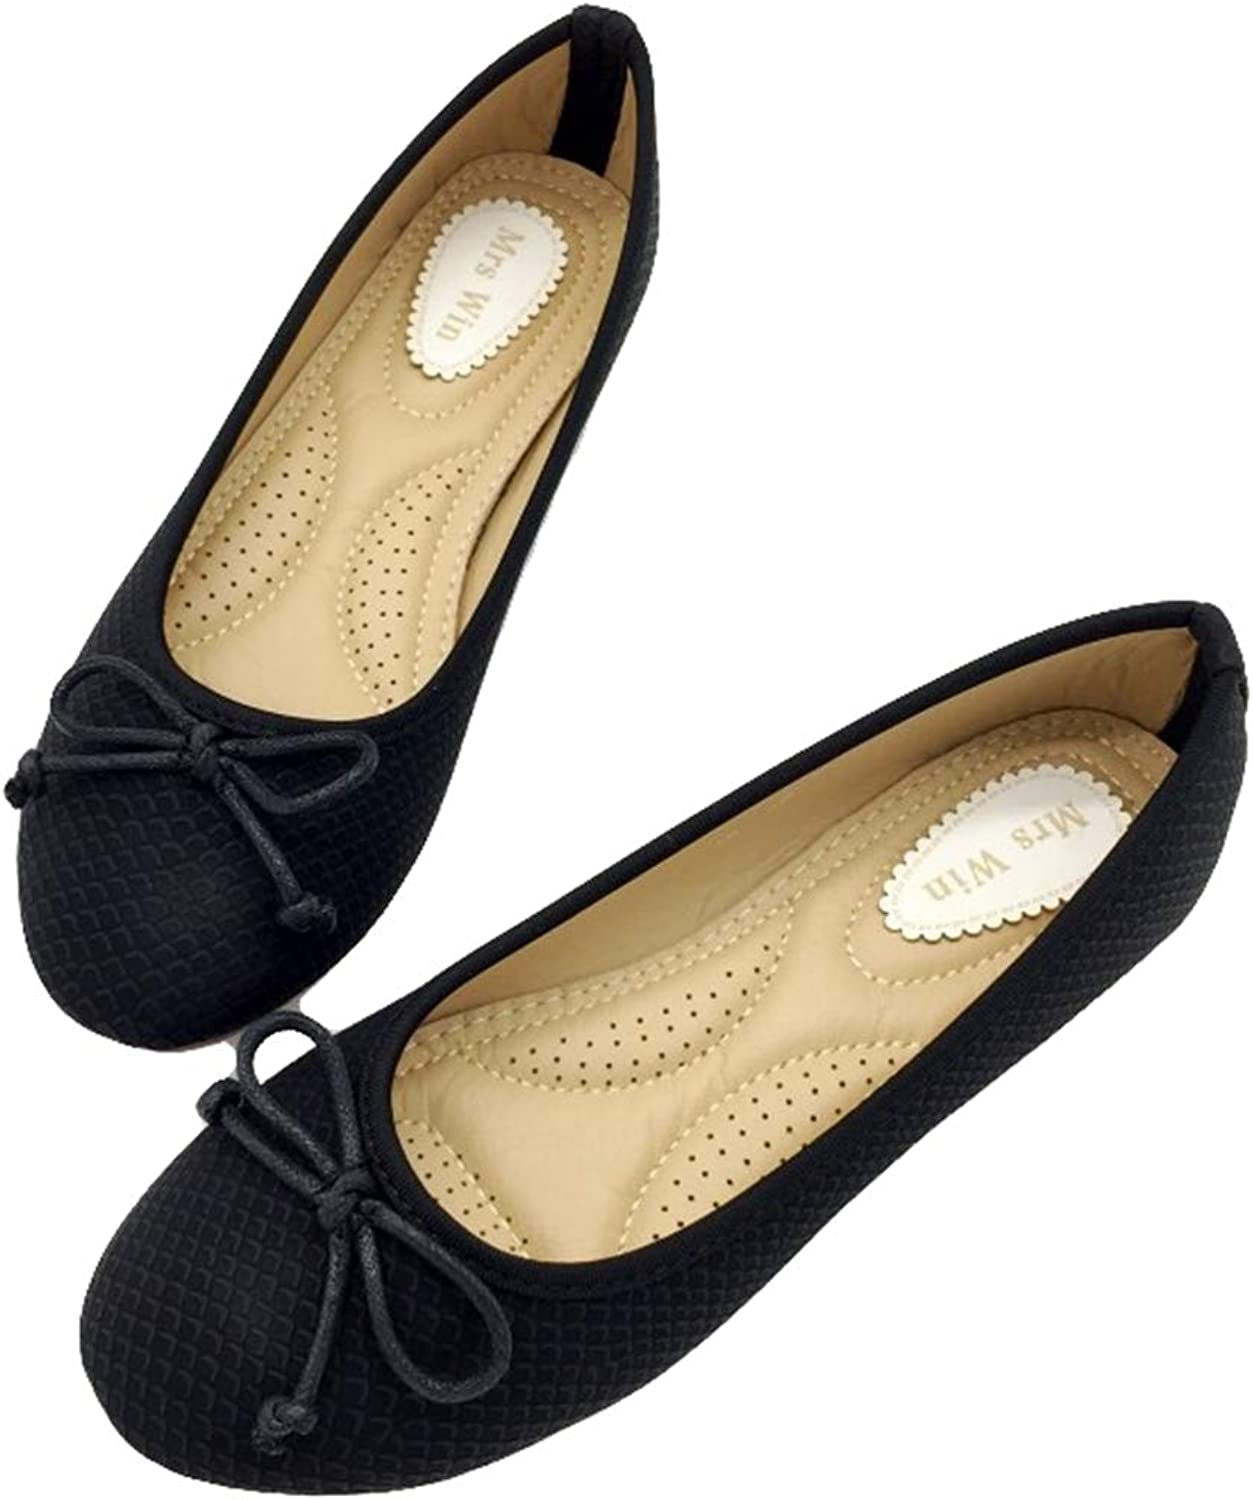 Owen Moll Women Flats, Black Beige Ballet Loafers Slip-On Round Toe Single Work shoes